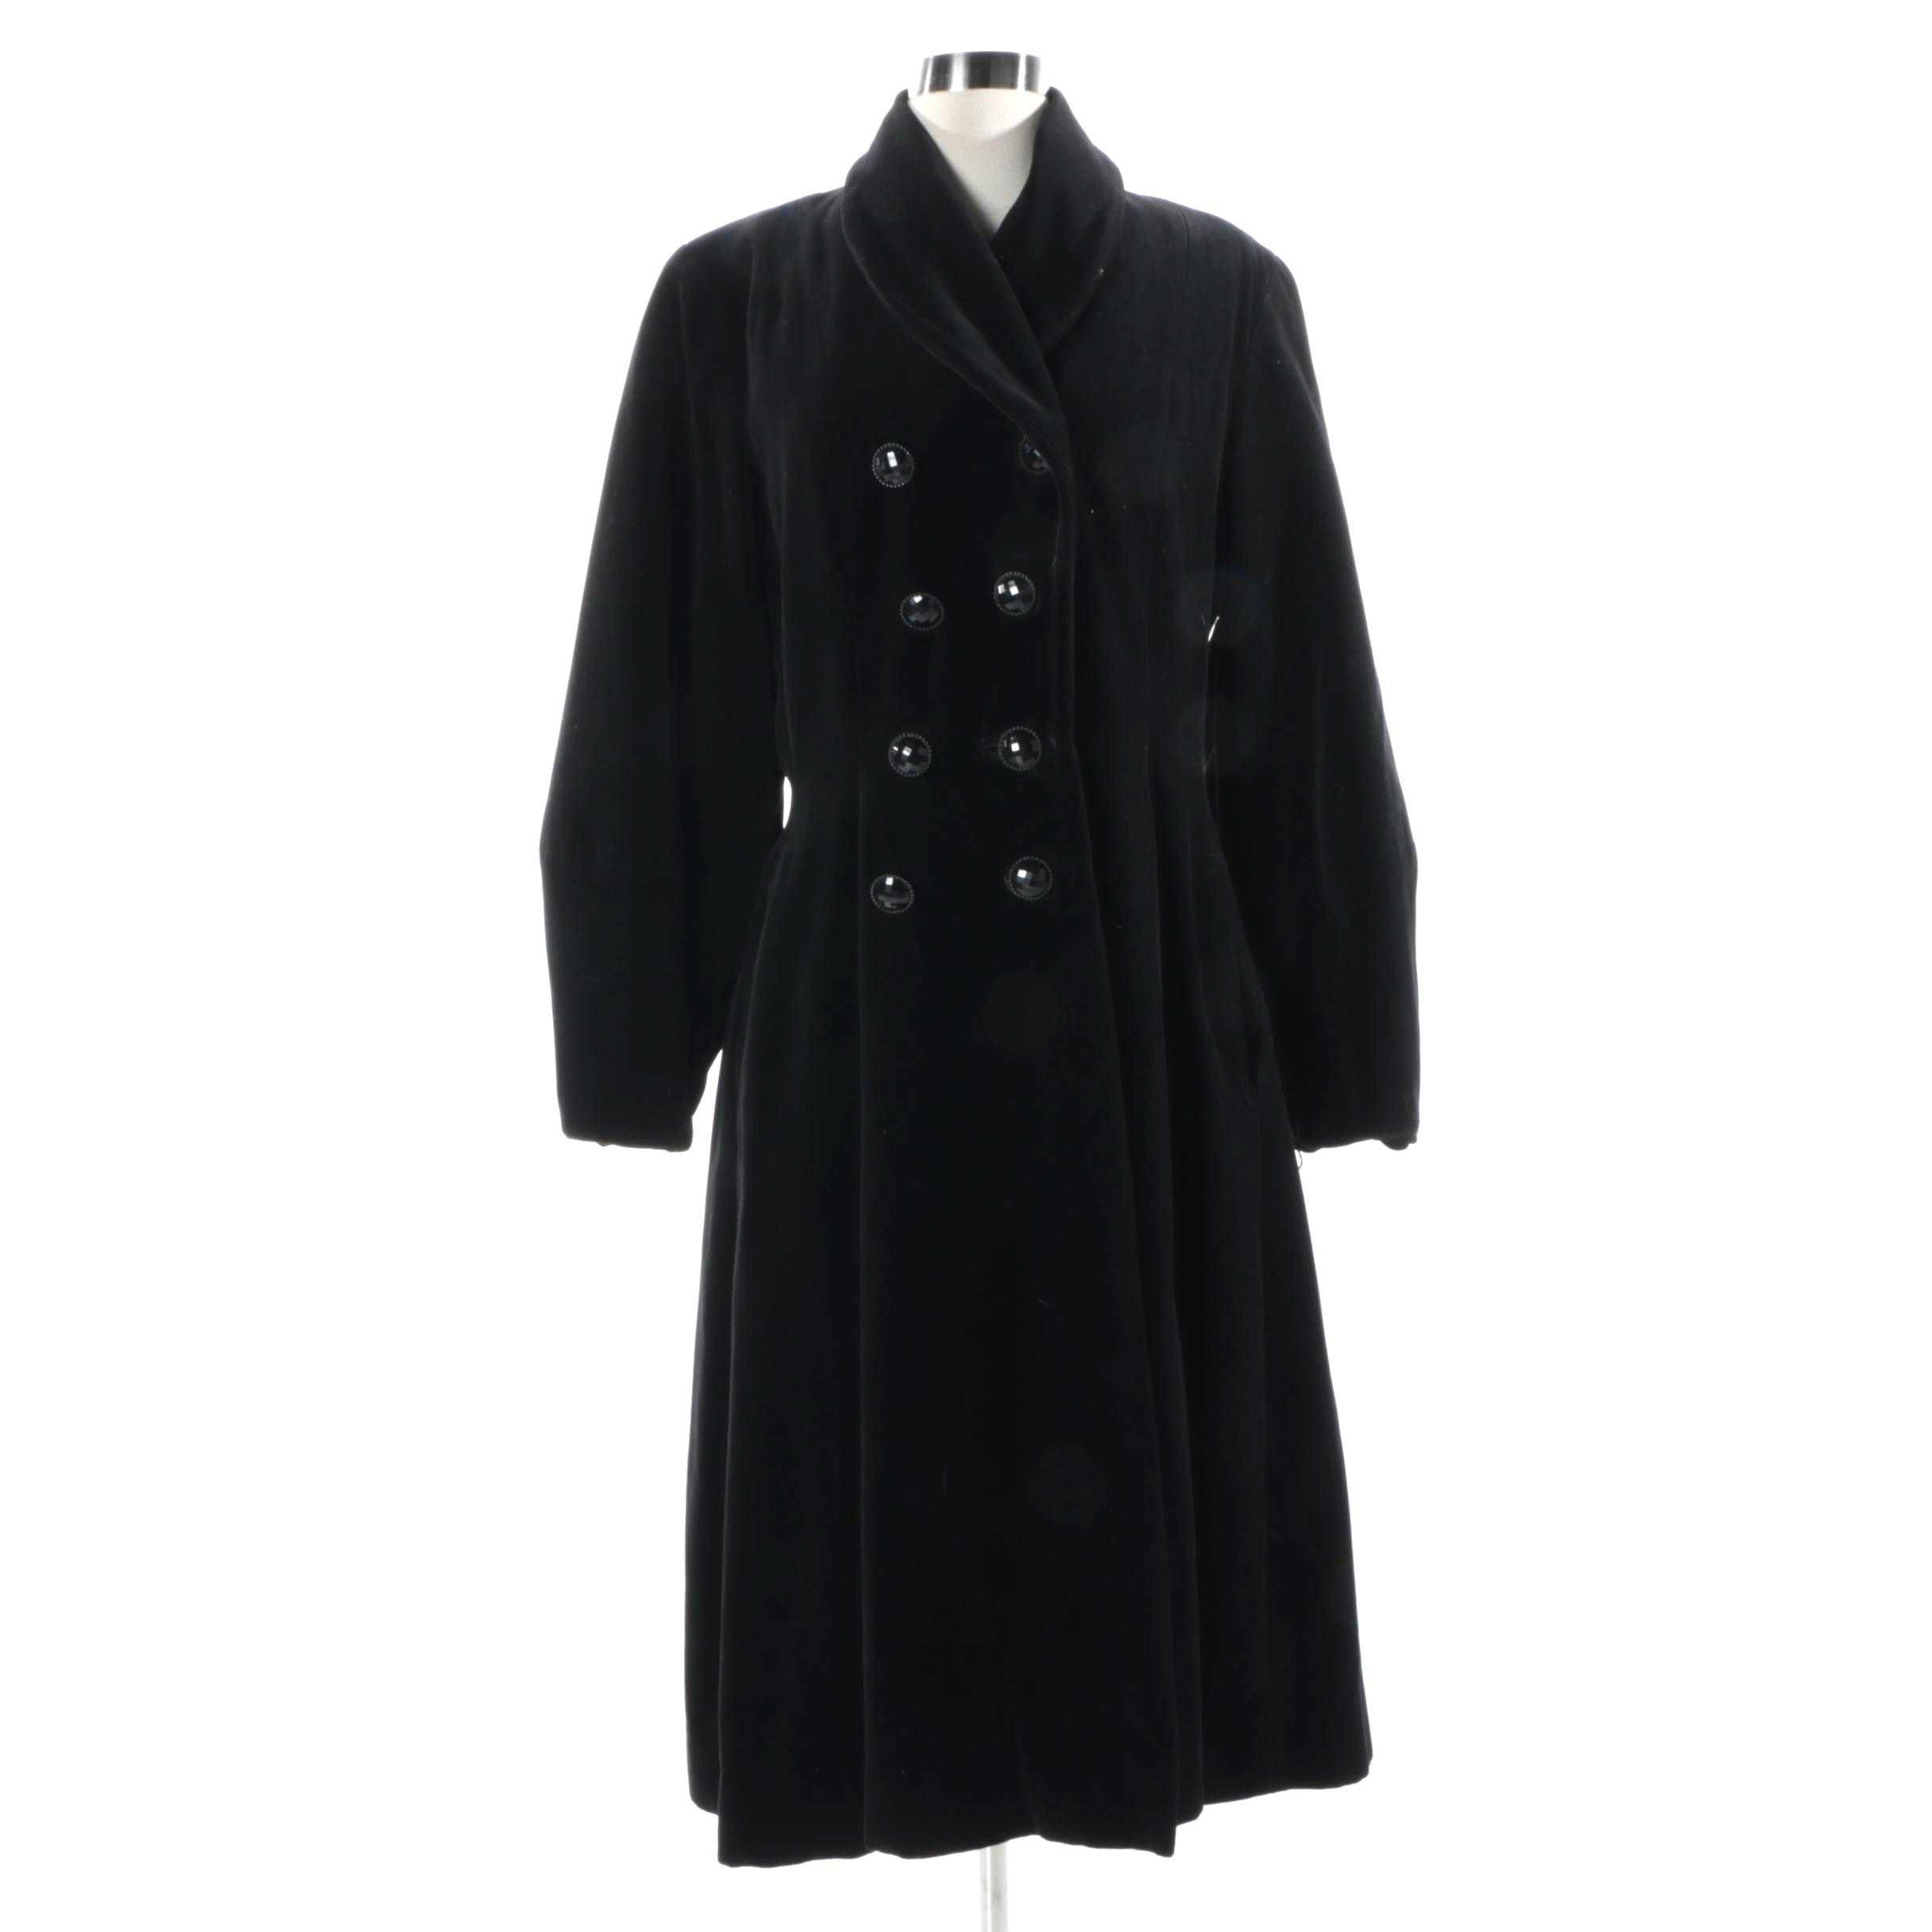 Women's Vintage Black Velvet Coat